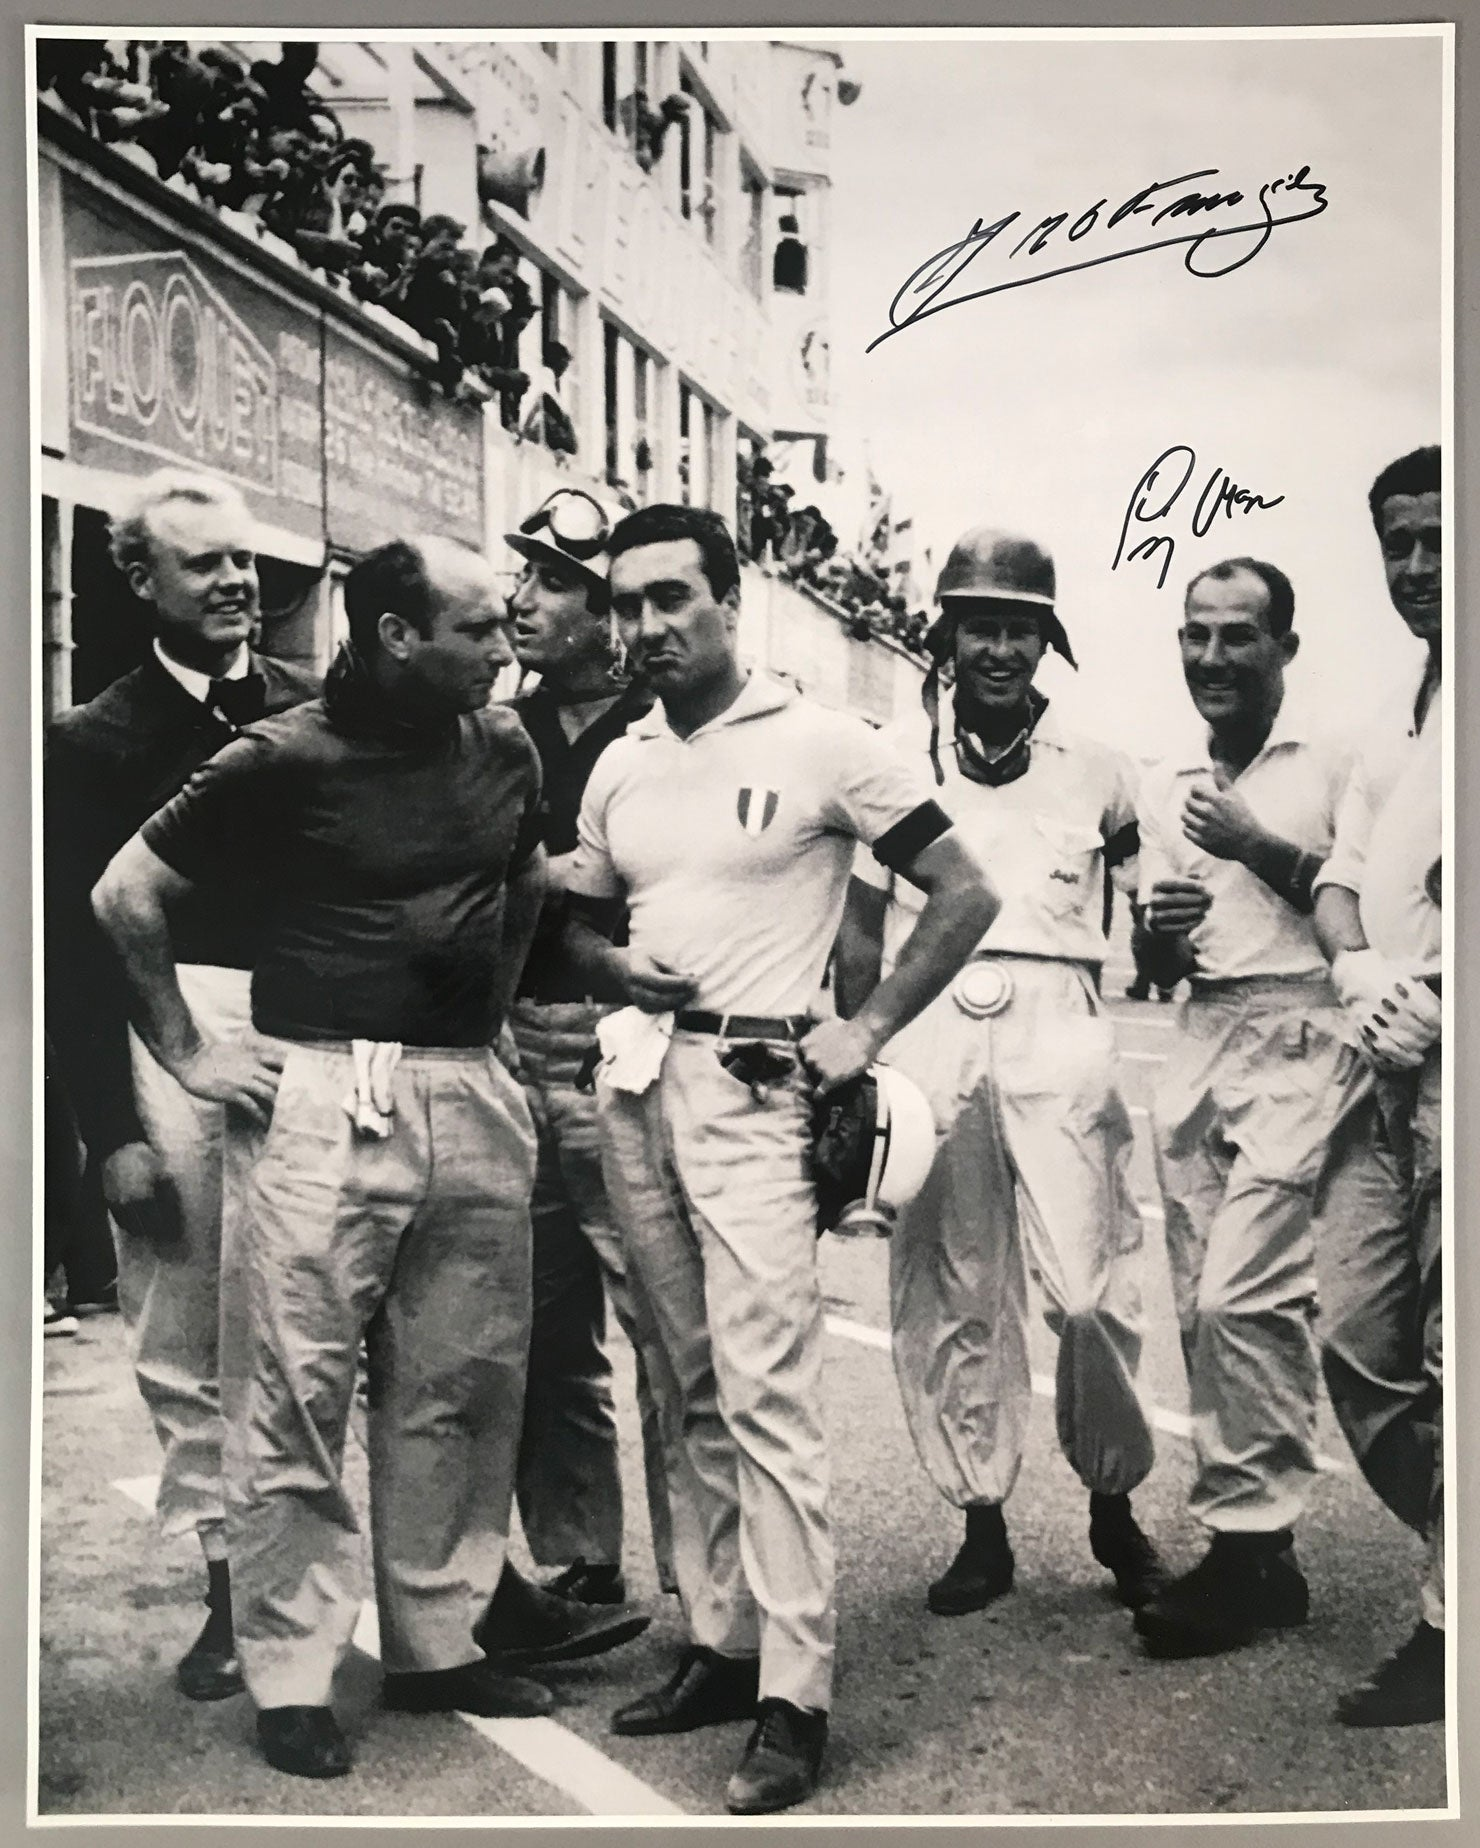 24 Hours of Le Mans 1955 B&W photograph, autographed by Fangio and Moss - $495.00